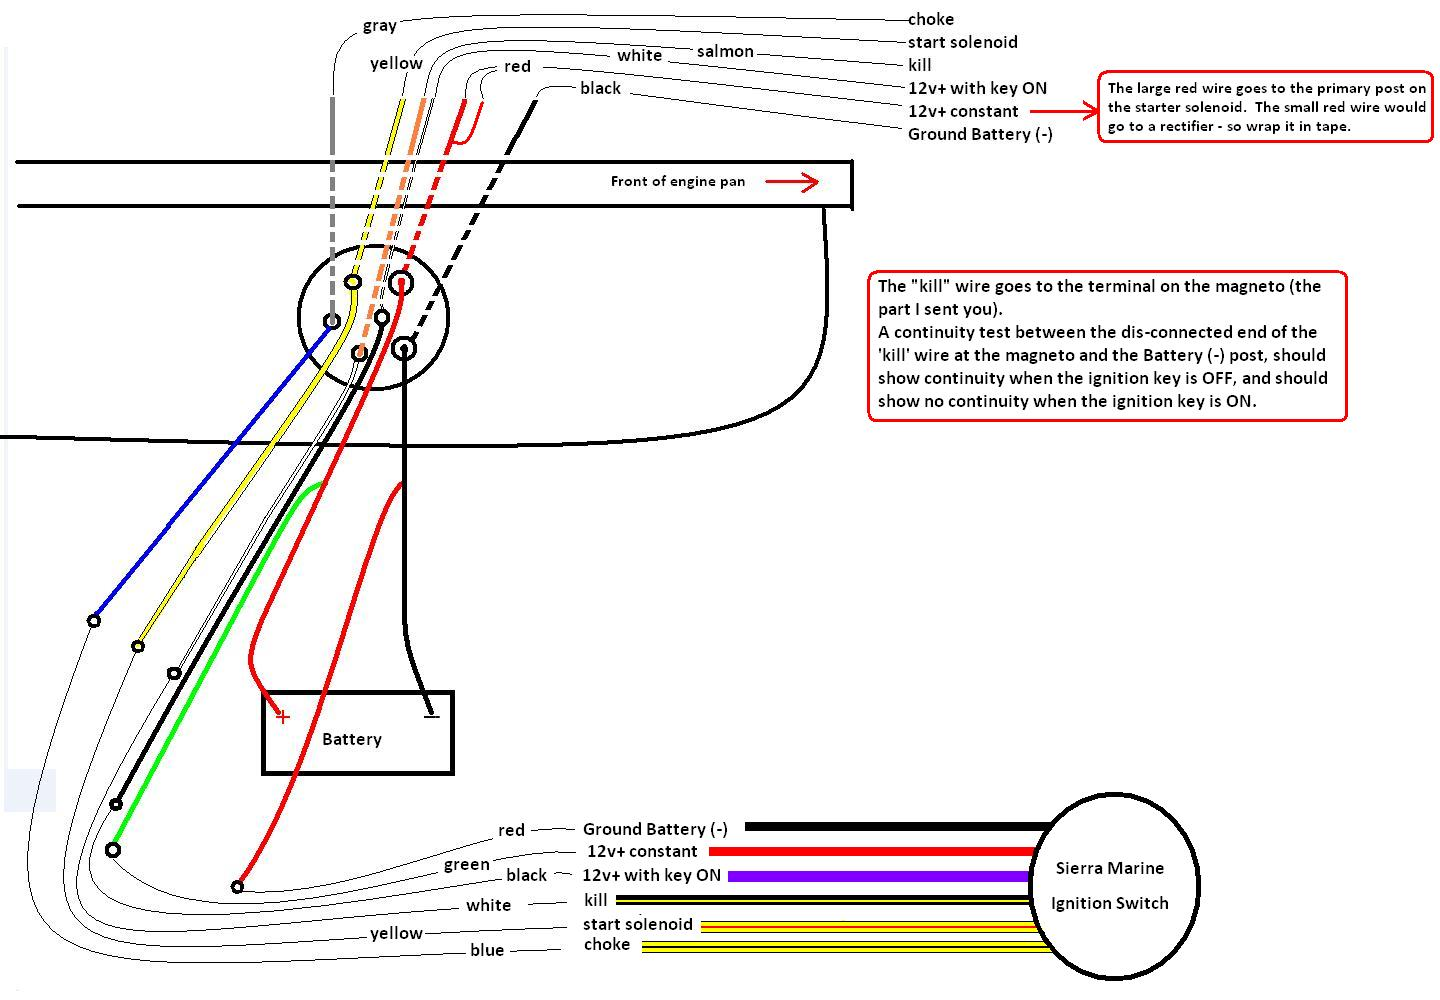 Tech_Pix___Magneto___Multiple_color_codes_nightmare fiberglassics� mercontrol wiring and replacing new switch mercontrol wiring diagram at mifinder.co